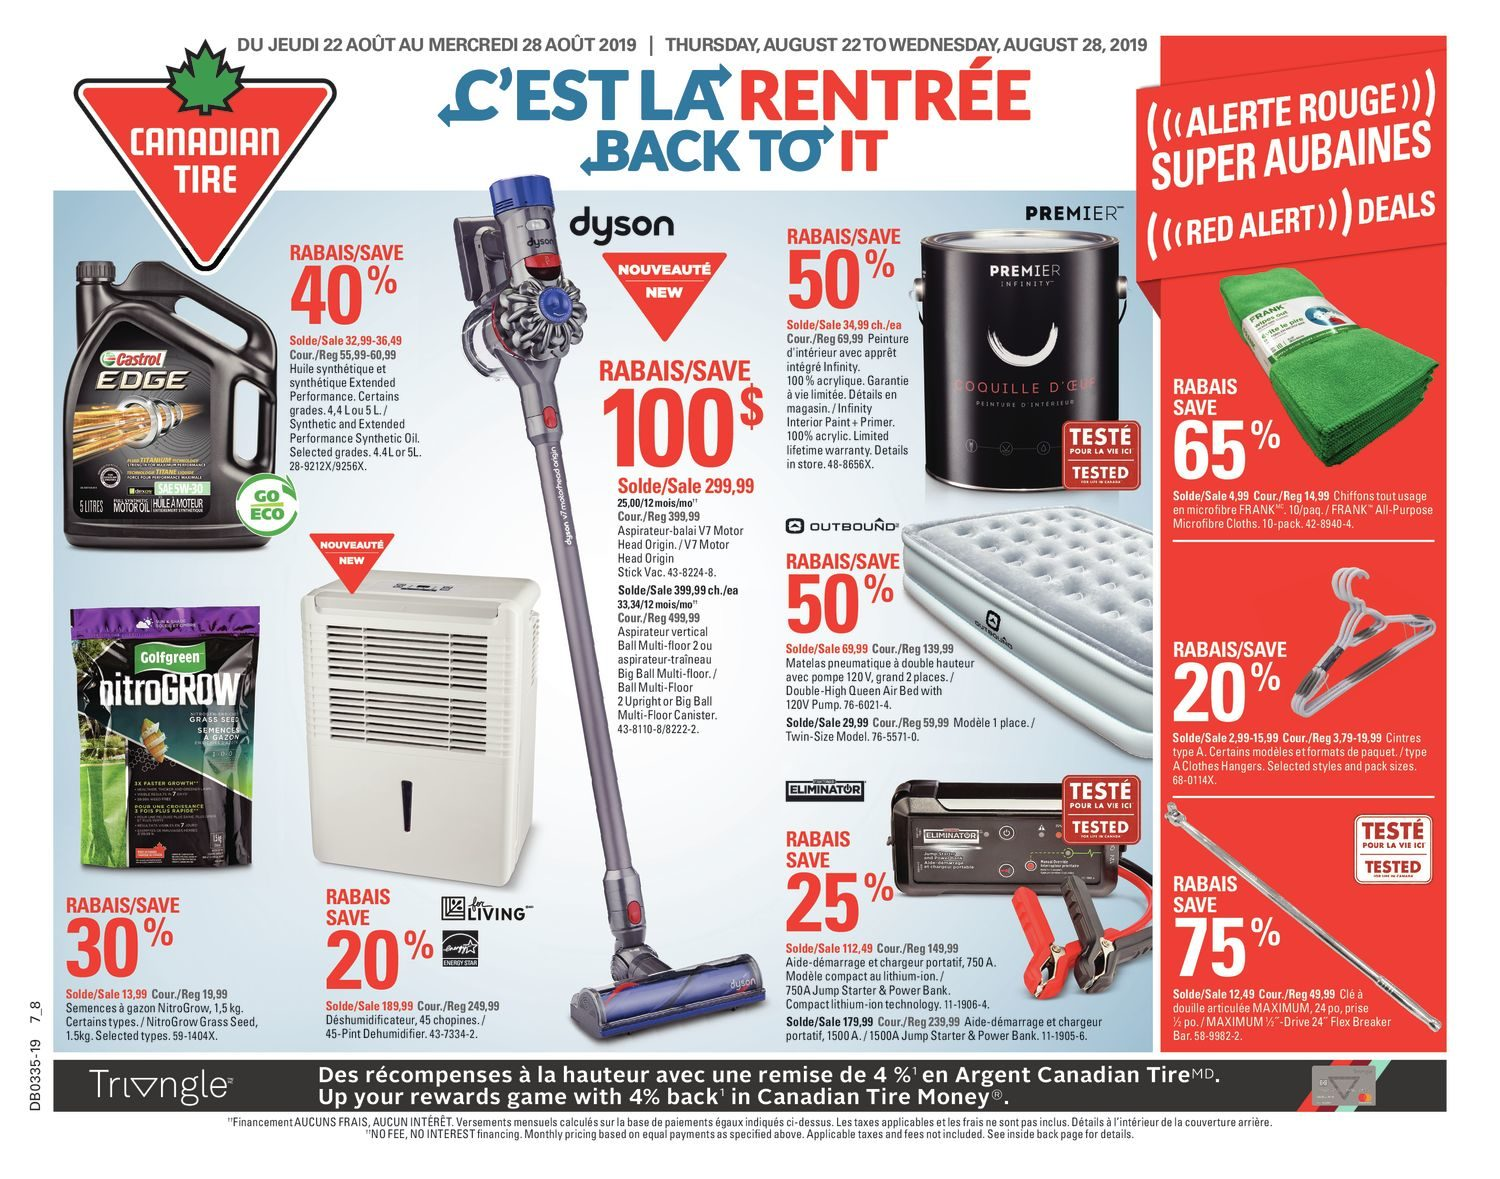 Canadian Tire Weekly Flyer Weekly Back To It Aug 22 28 Redflagdeals Com